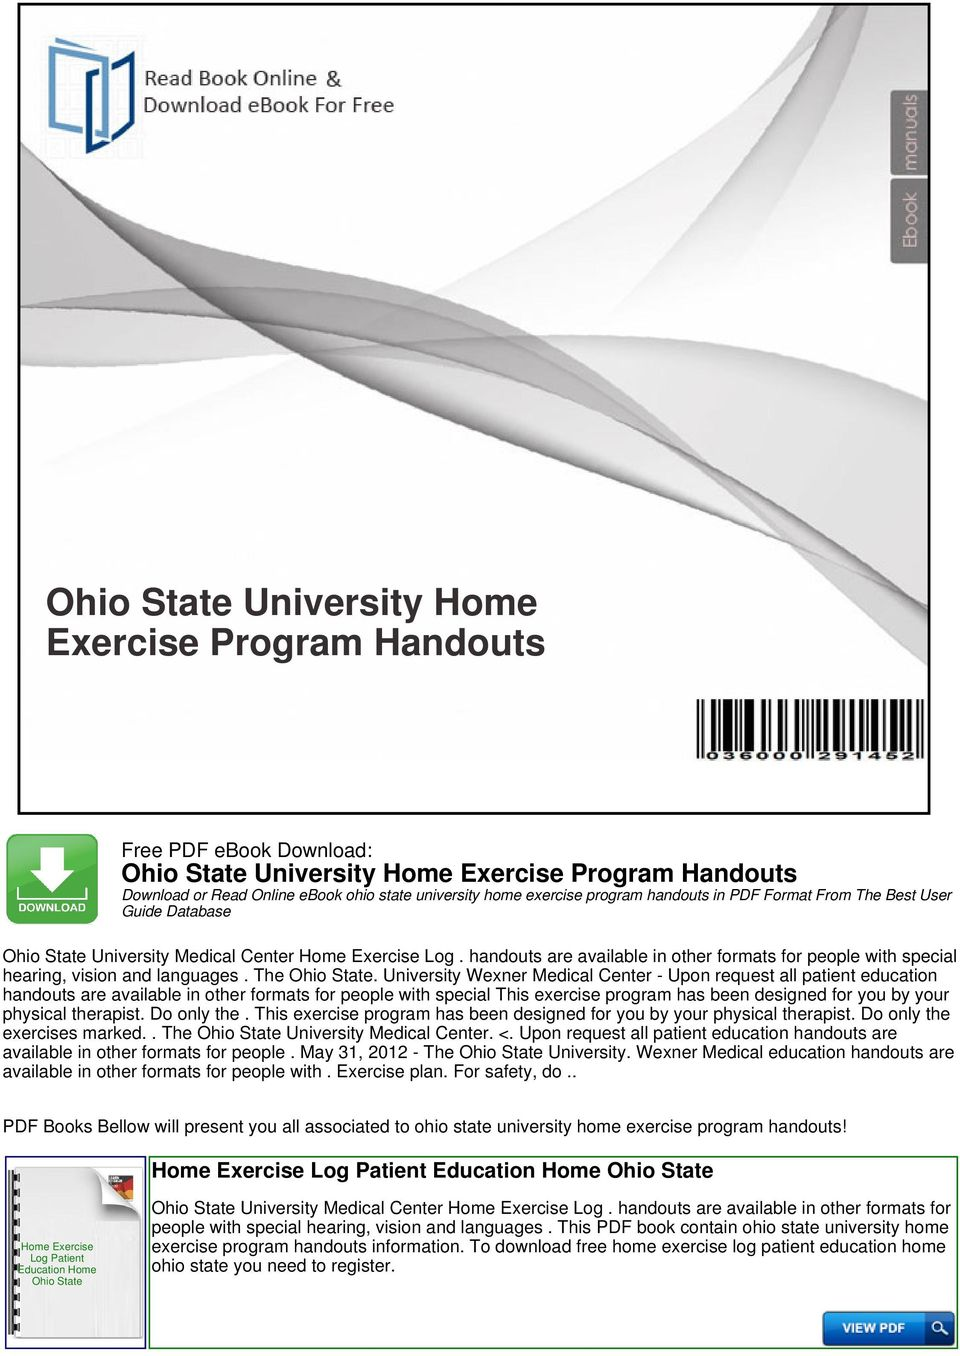 Ohio state university home exercise program handouts pdf wexner medical center upon request all patient education handouts are available in other formats for fandeluxe Choice Image